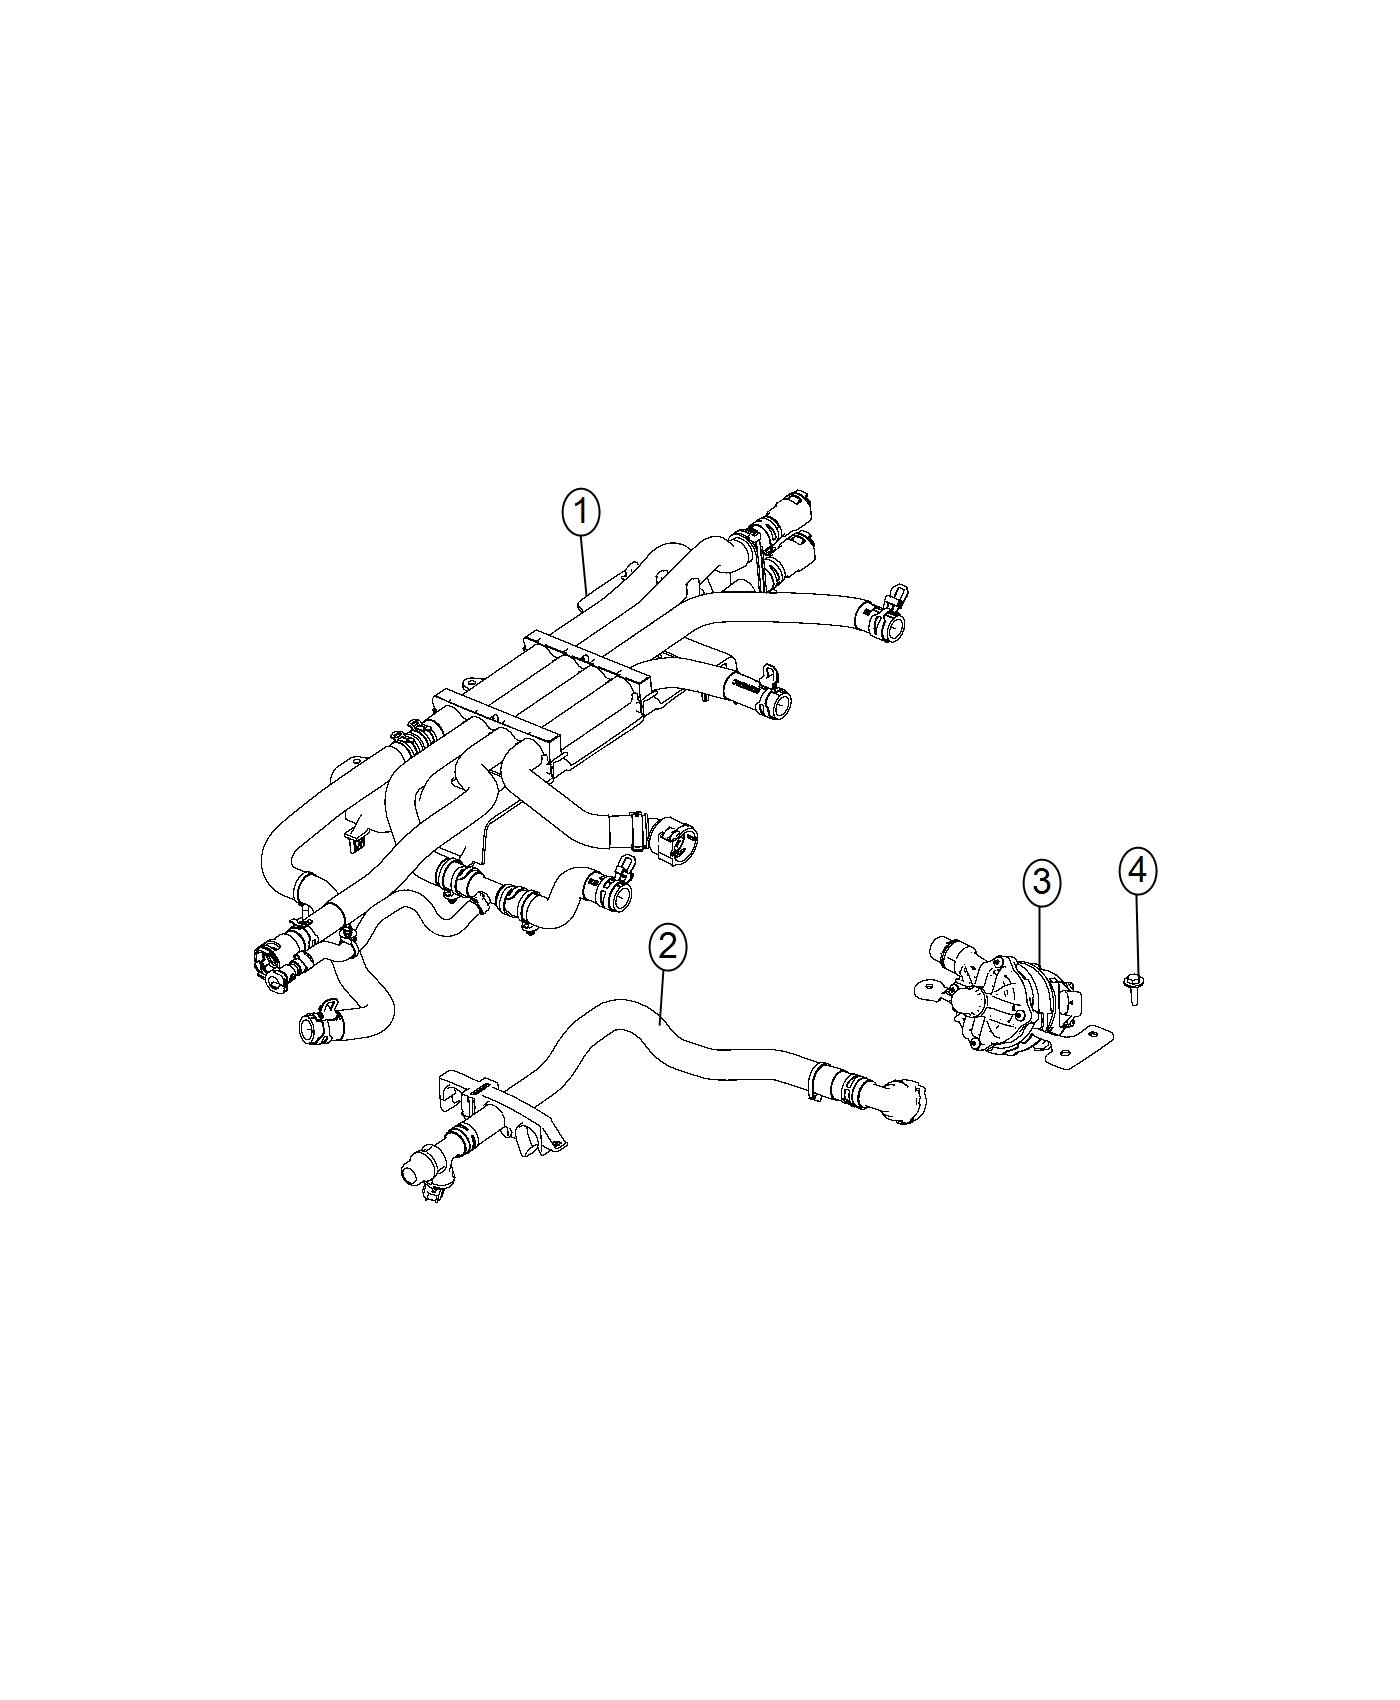 2017 Chrysler Pacifica Pump. Auxiliary Coolant. Battery